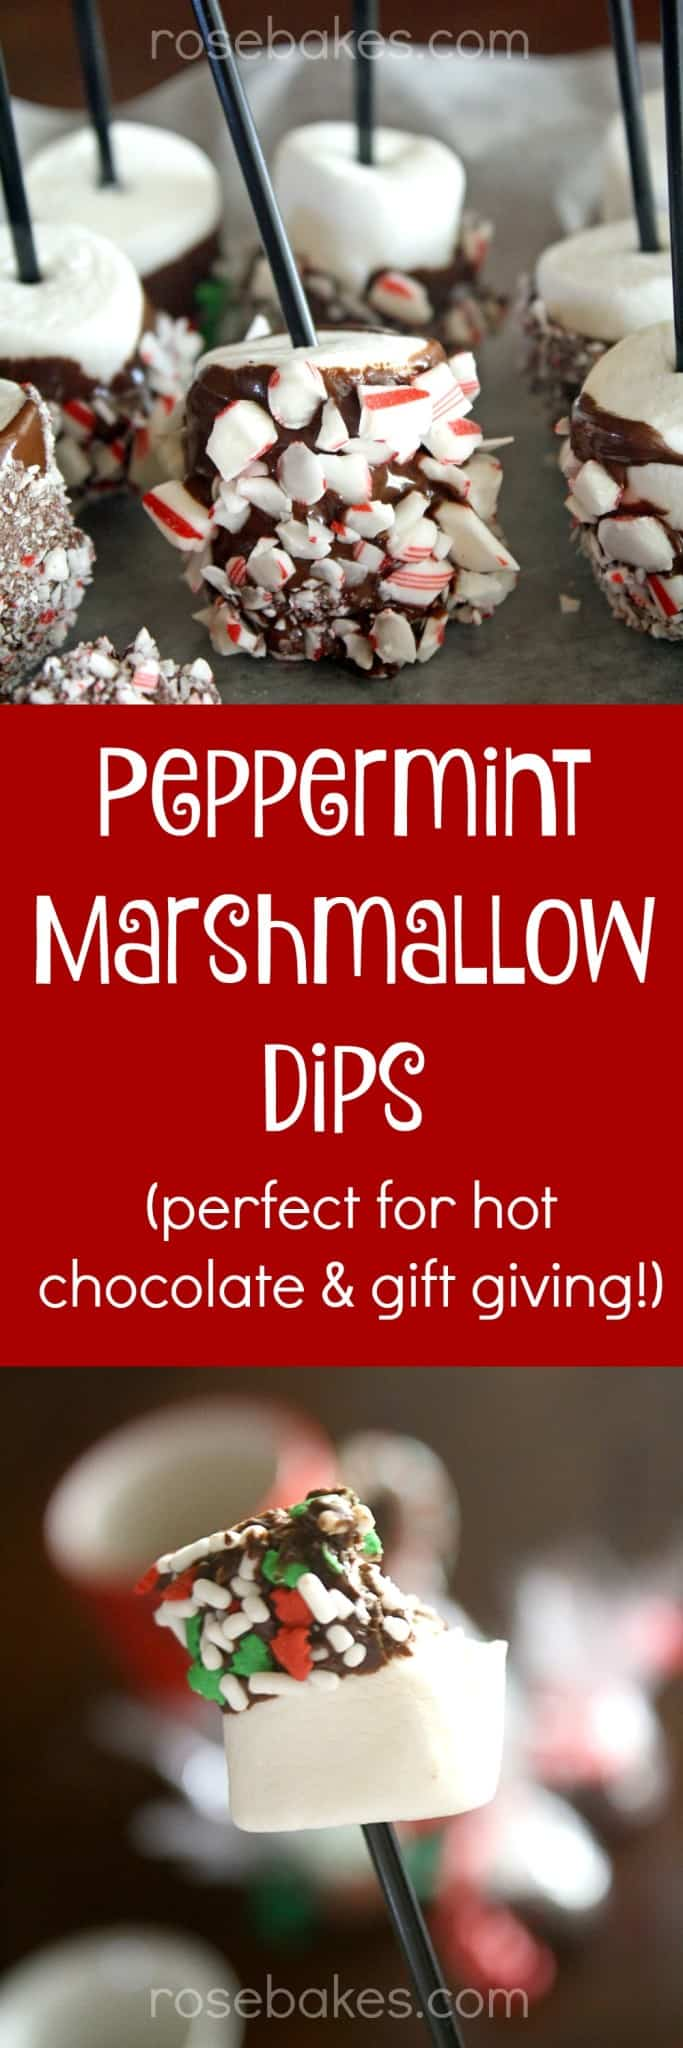 Peppermint Marshmallow Dips! These are perfect for dipping in hot chocolate, eating right off the stick, or wrapping up to give as a gift with a coffee mug & hot chocolate!